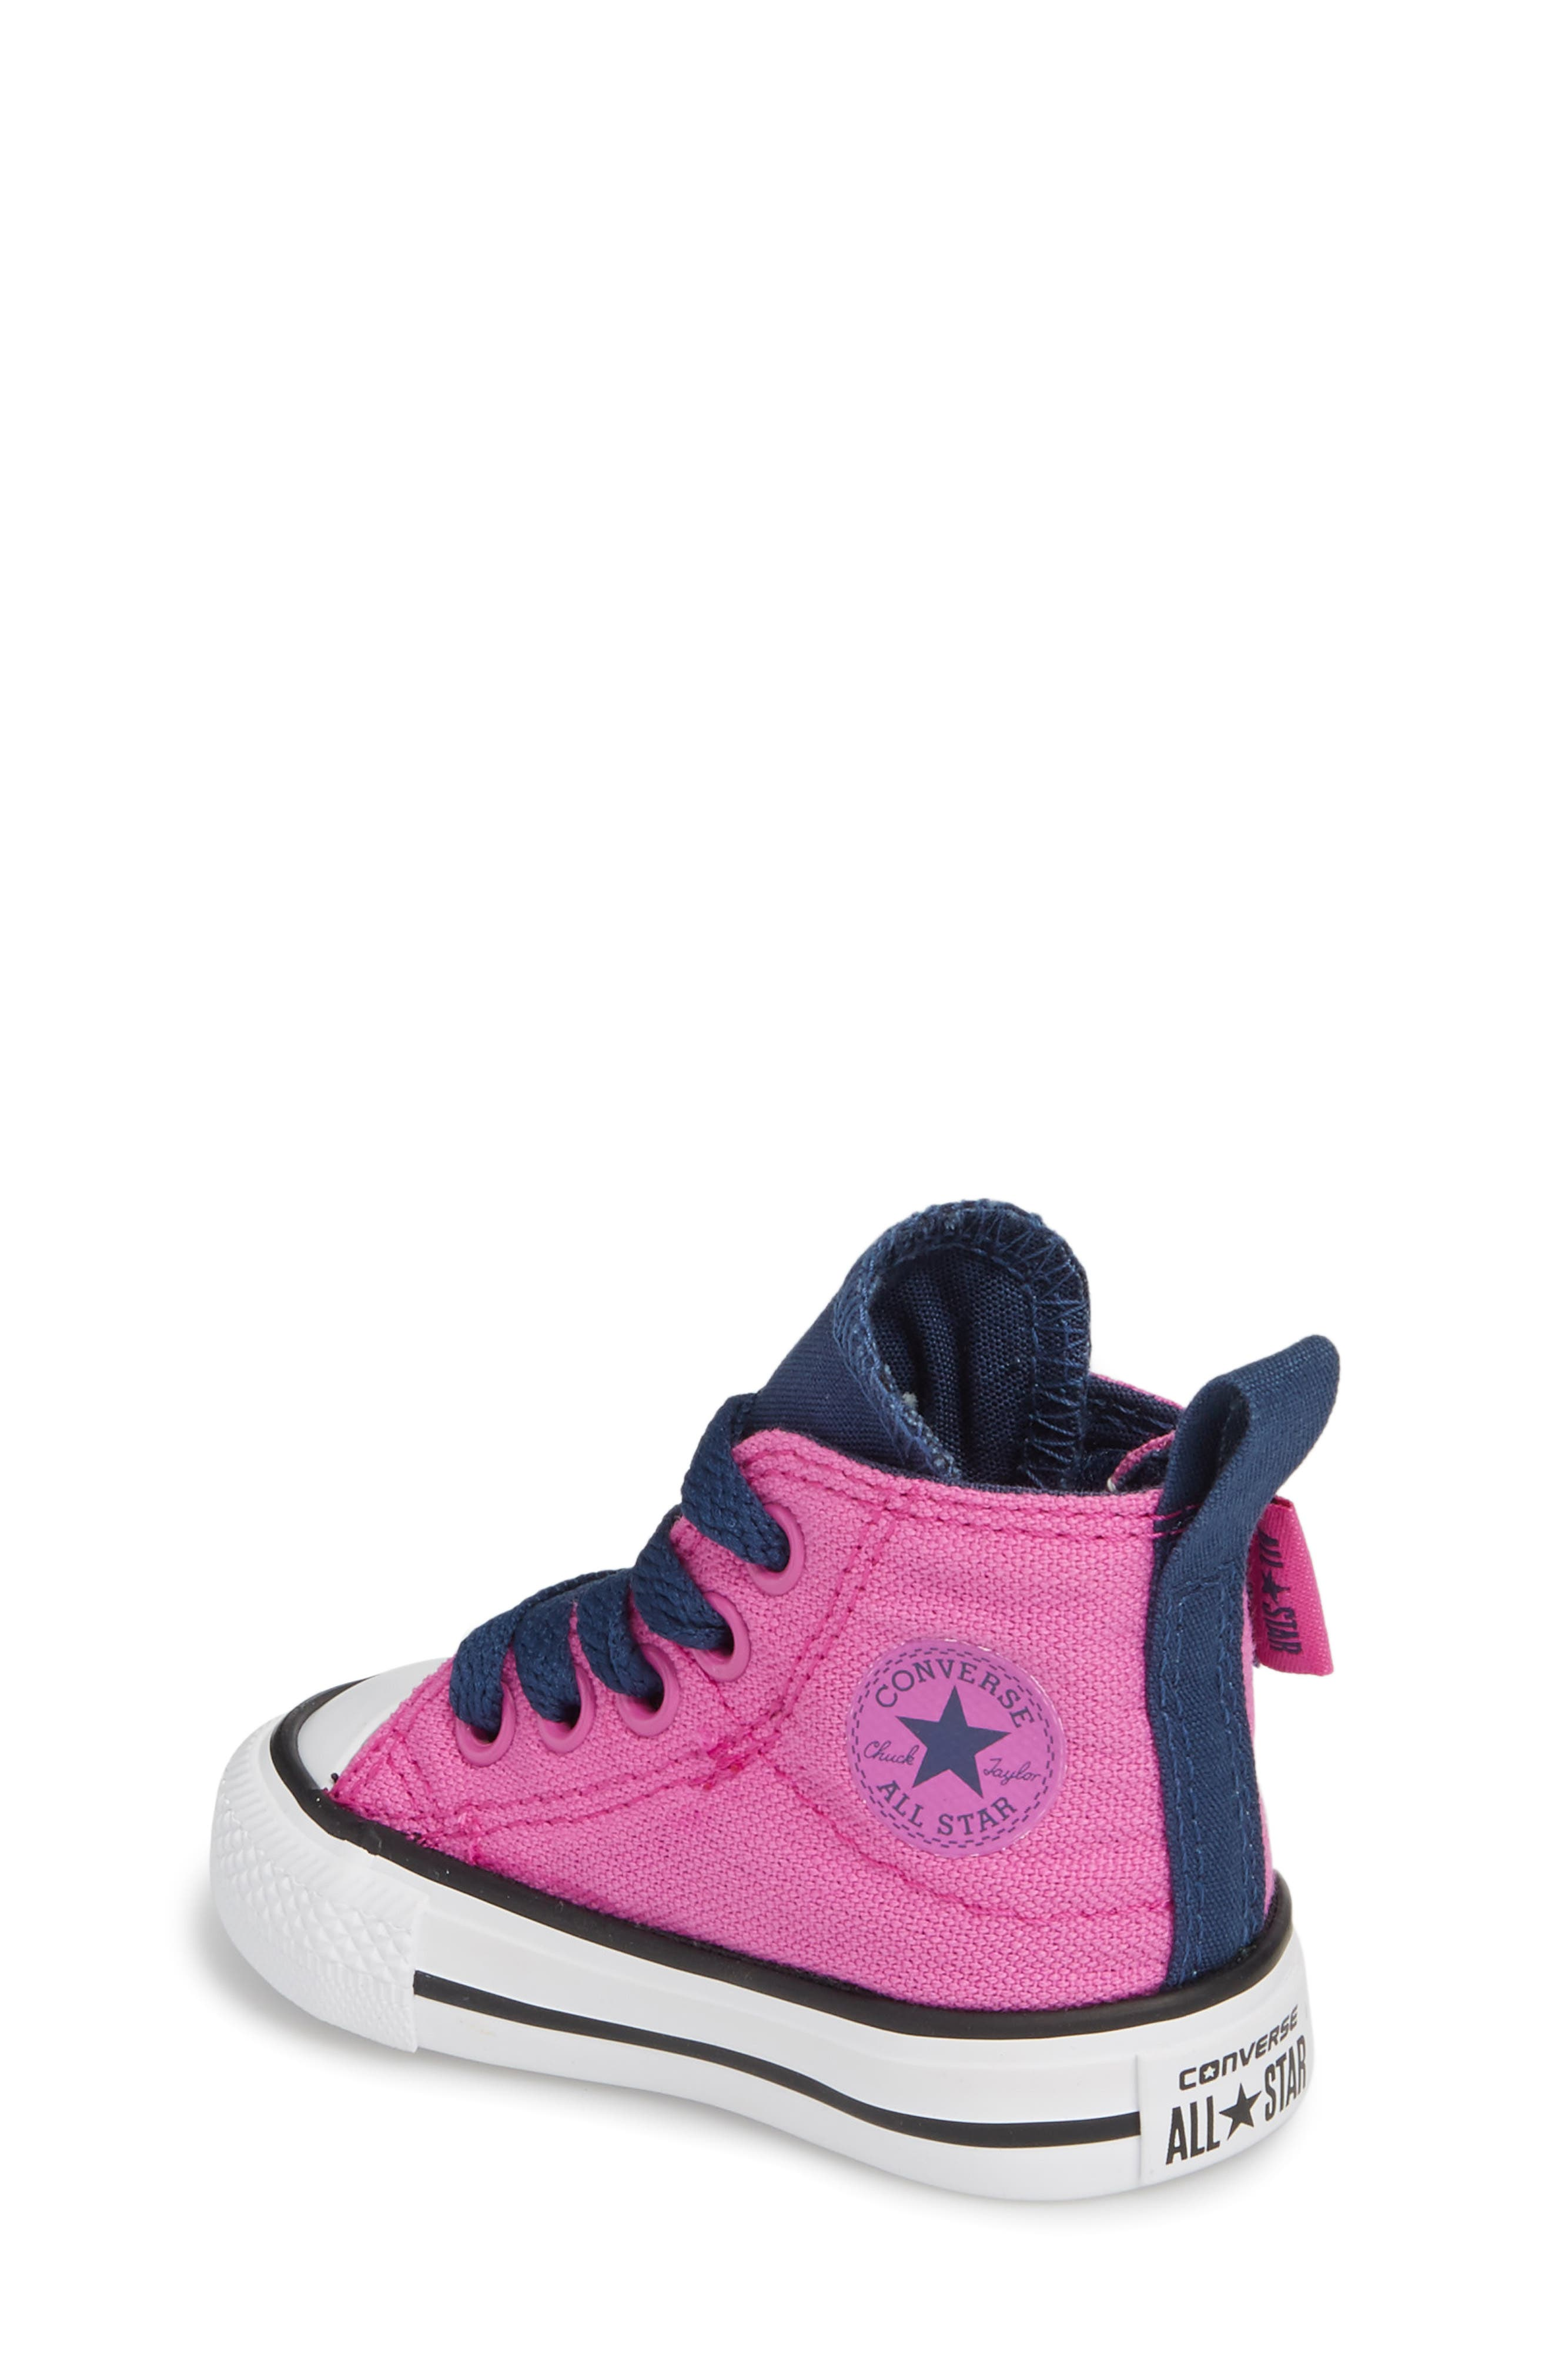 Alternate Image 2  - Converse Chuck Taylor® All Star® 'Simple Step' High Top Sneaker (Baby, Walker & Toddler)